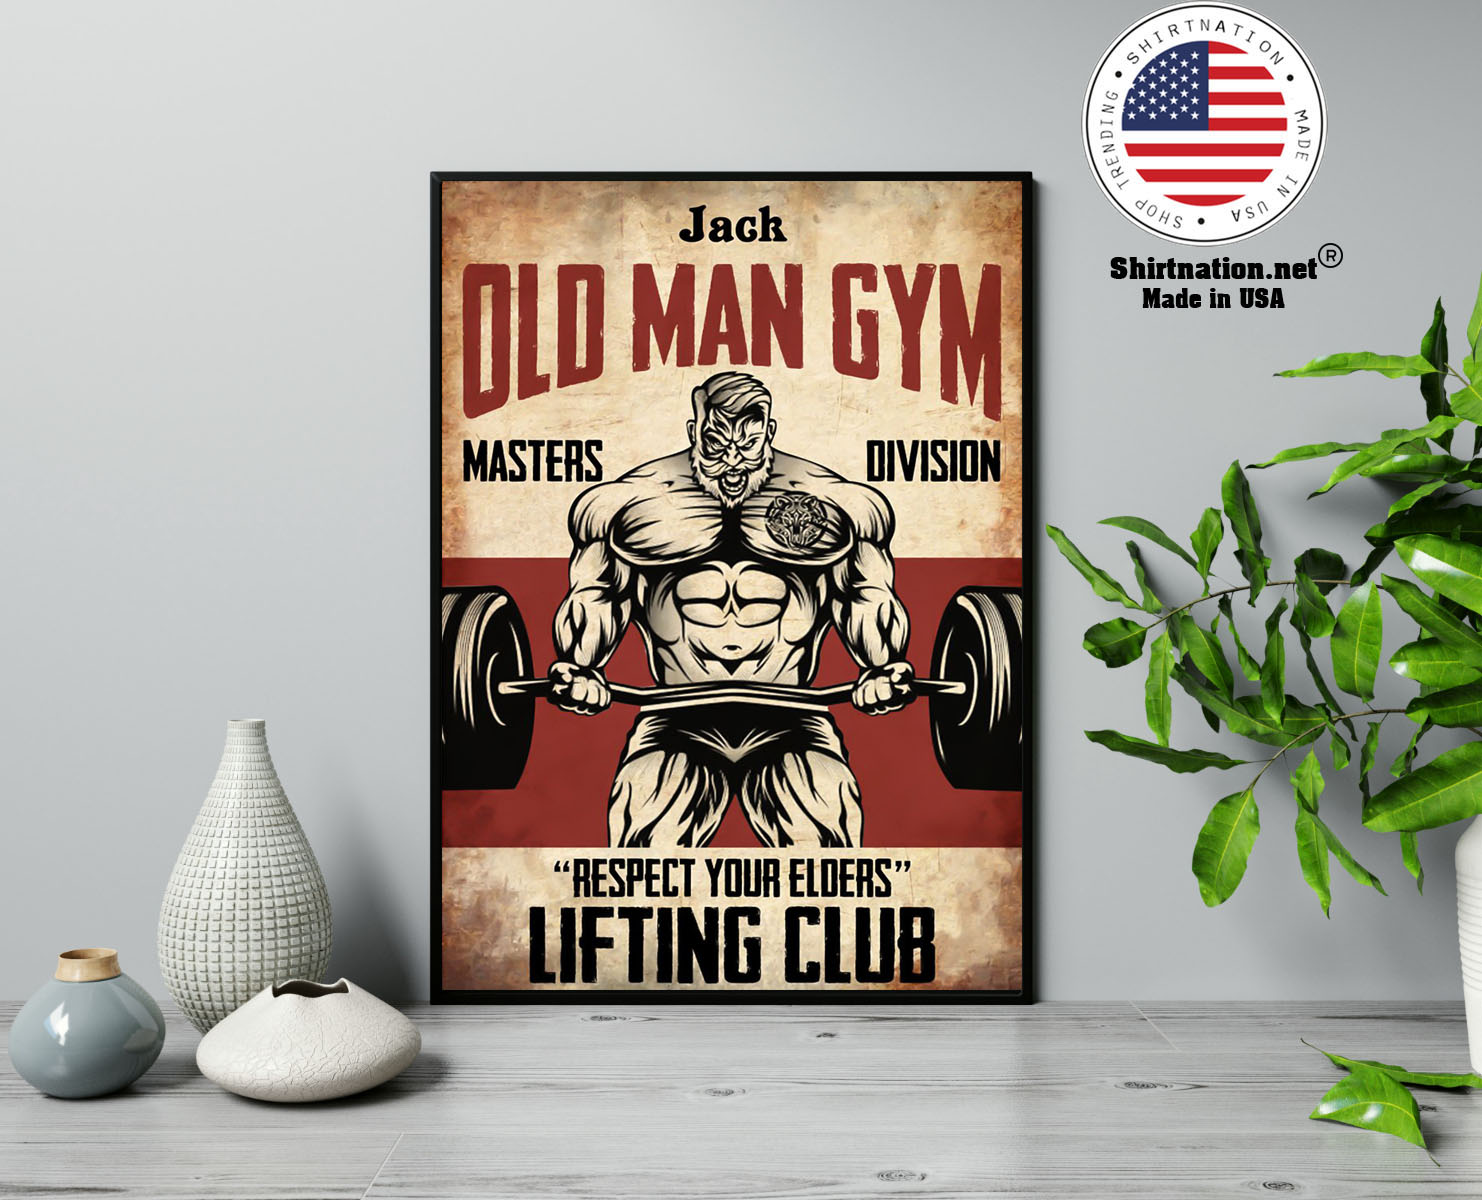 Old man gym masters division respect your elders lifting club poster 13 2